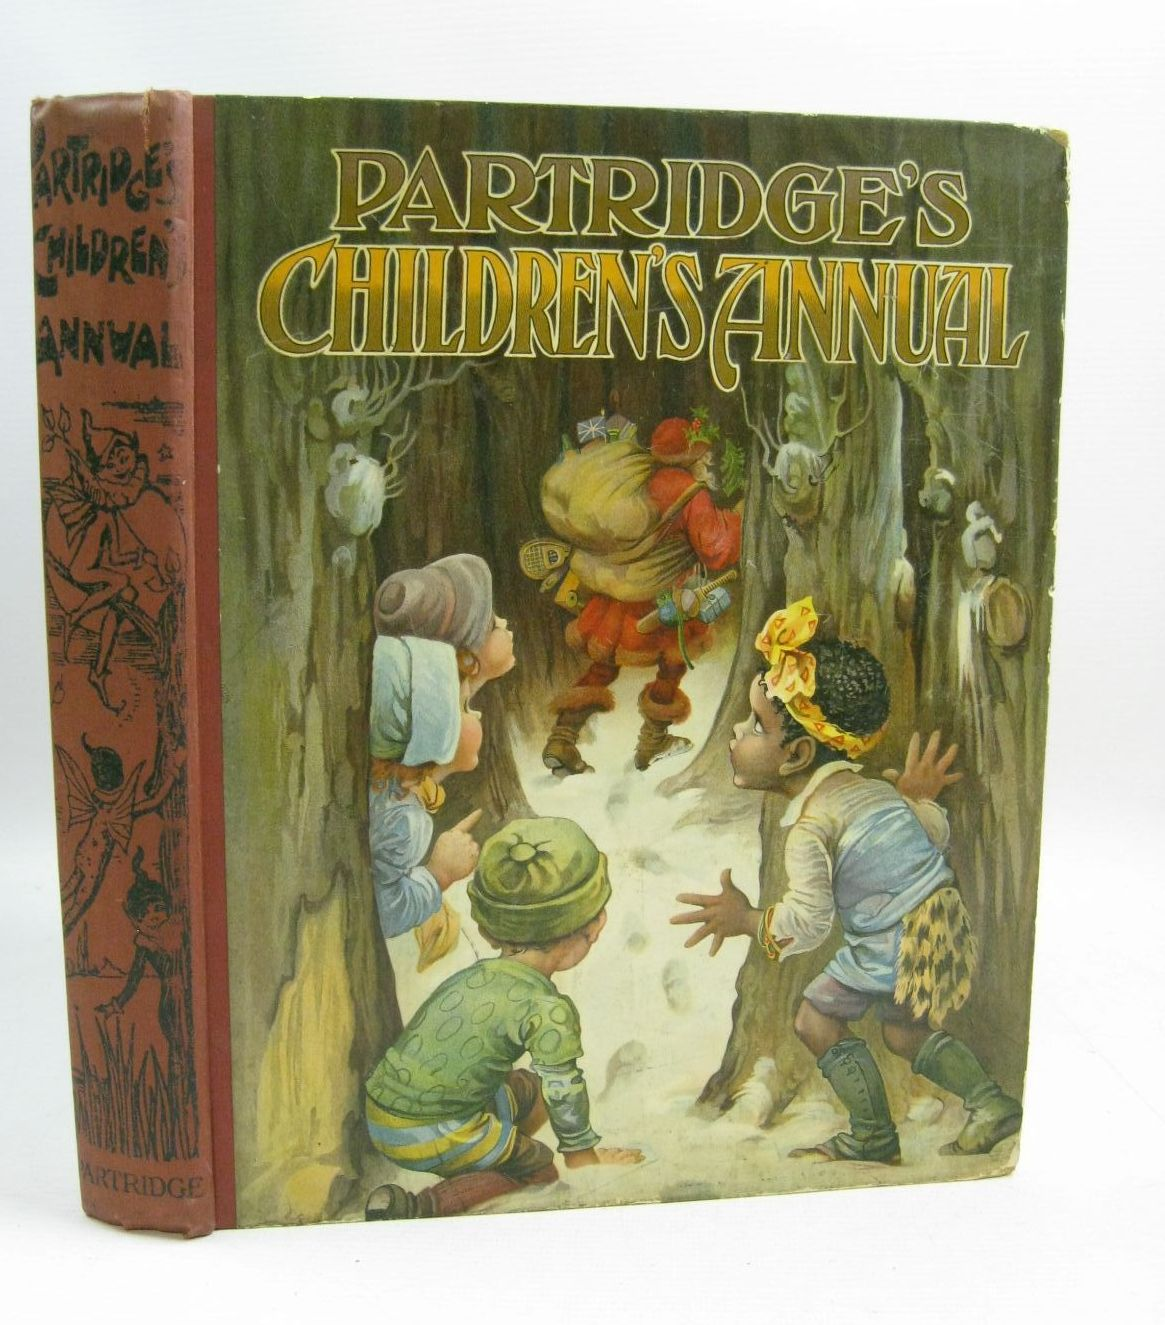 Photo of PARTRIDGE'S CHILDREN'S ANNUAL - 7TH YEAR written by Cash, Agness E.<br />Lea, John<br />Blomfield, Elsie<br />et al, illustrated by Aris, Ernest A.<br />Blomfield, Elsie<br />Bowley, A.L.<br />Cooke, Arthur<br />Wain, Louis<br />et al., published by S.W. Partridge & Co. Ltd. (STOCK CODE: 1315363)  for sale by Stella & Rose's Books